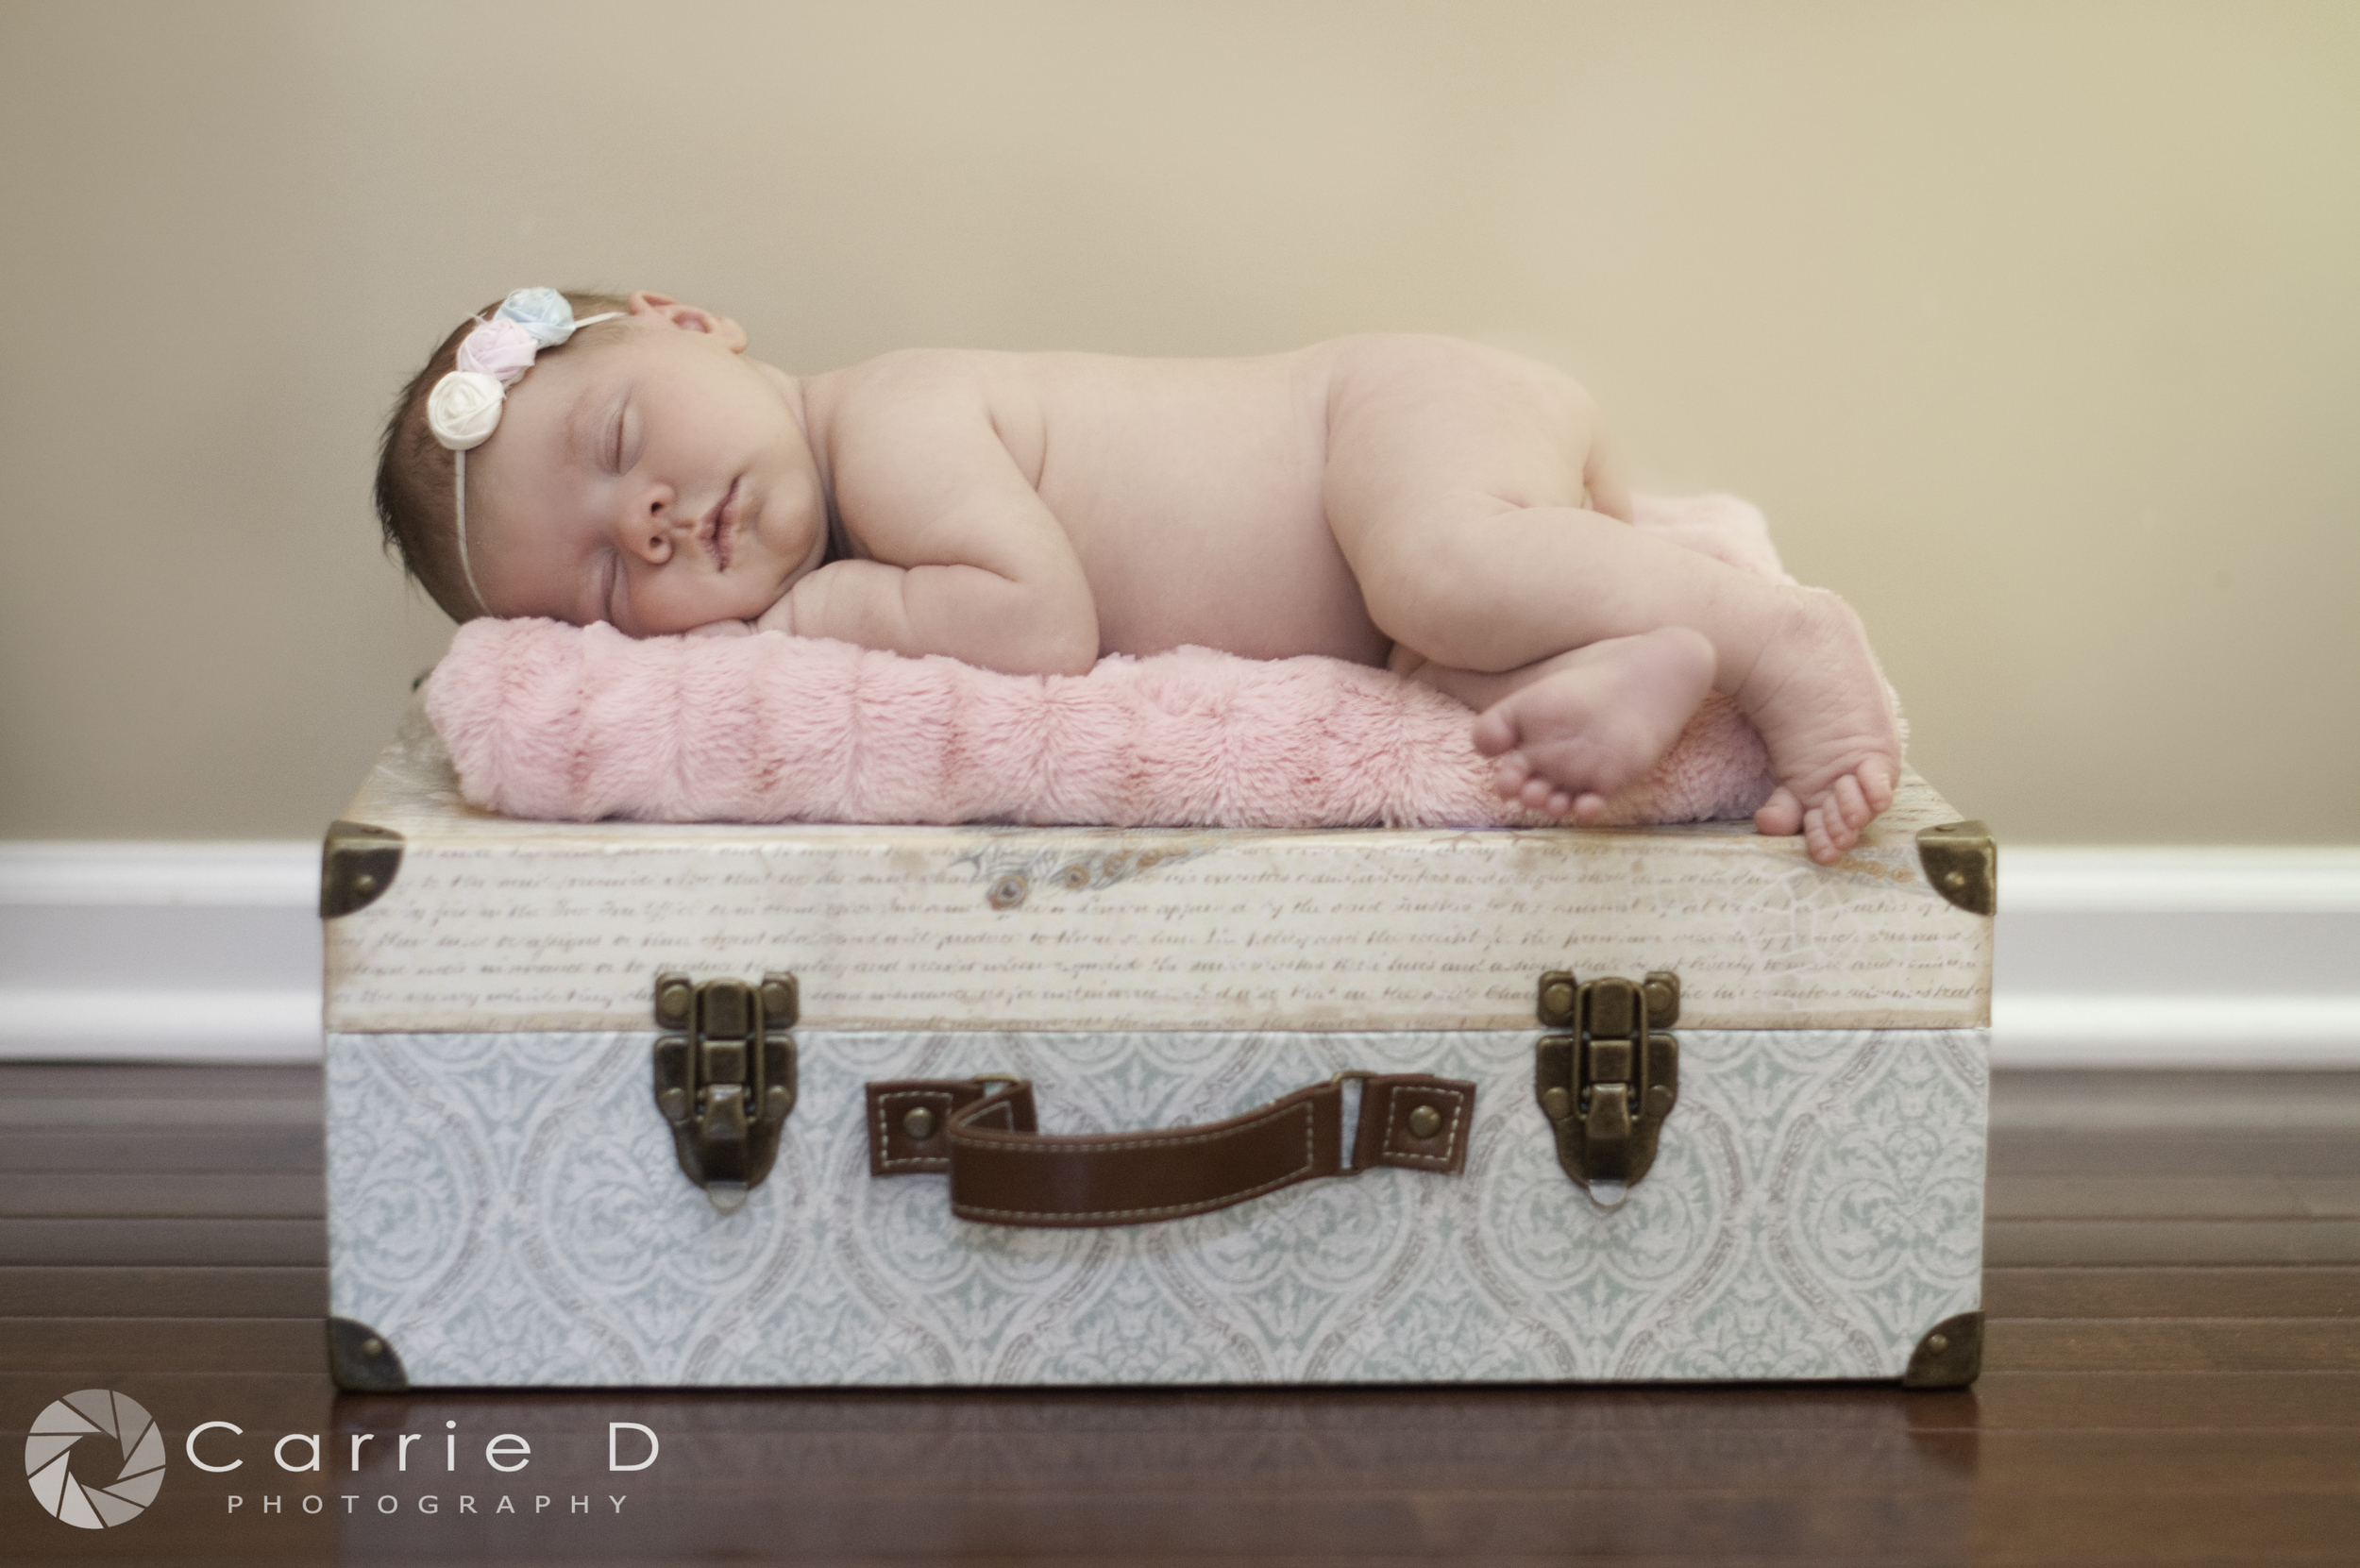 Northern VIrginia Newborn Photographer, Northern VIrginia Family Photographer, Northern Virginia Natural Light Photographer, Newborn Posing, Natural Light Photography